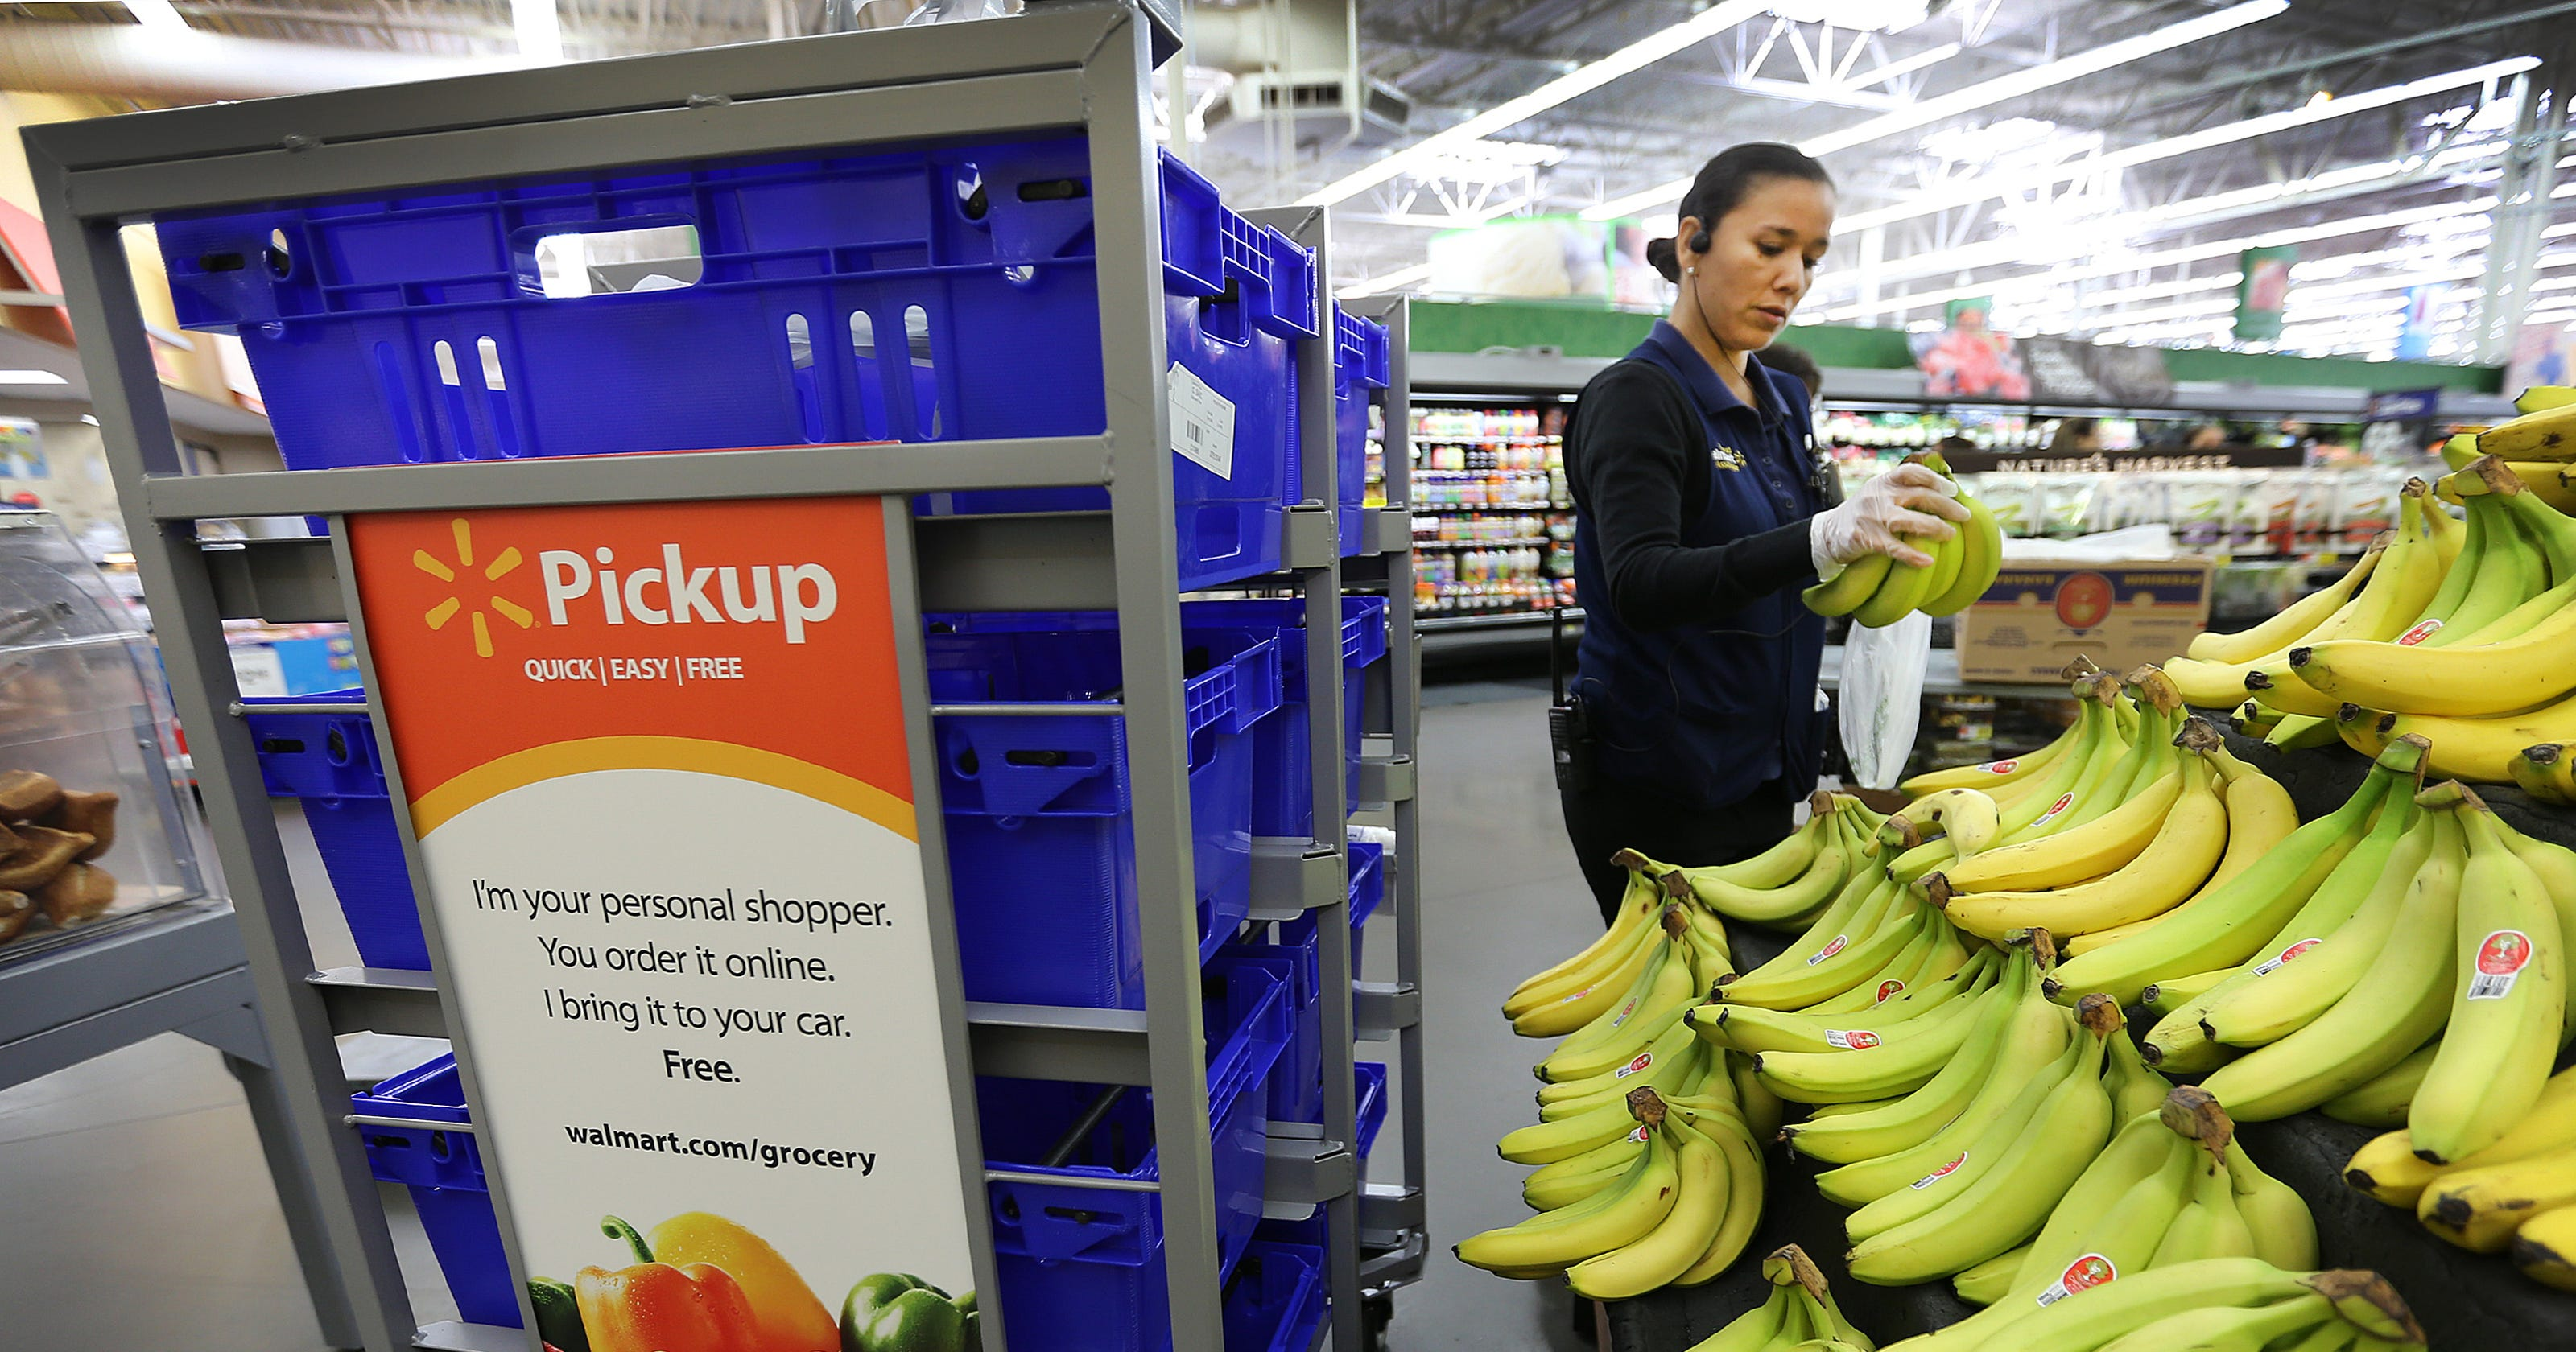 Wal-Mart offers new grocery pickup service